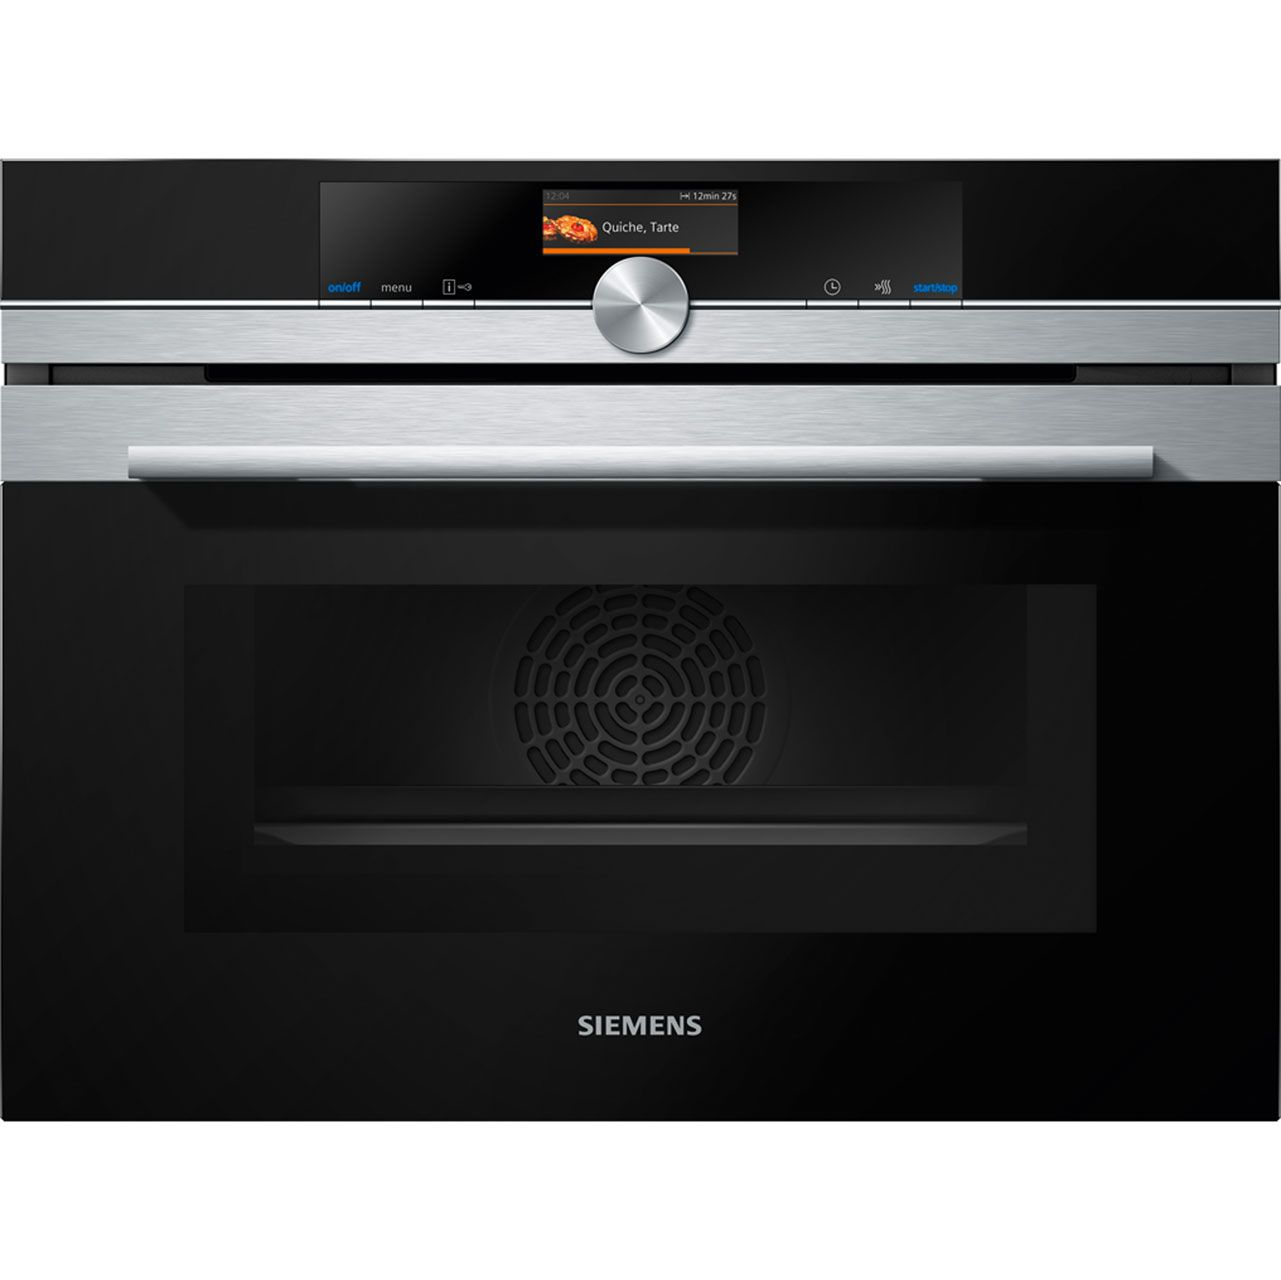 Built in compact oven with microwave